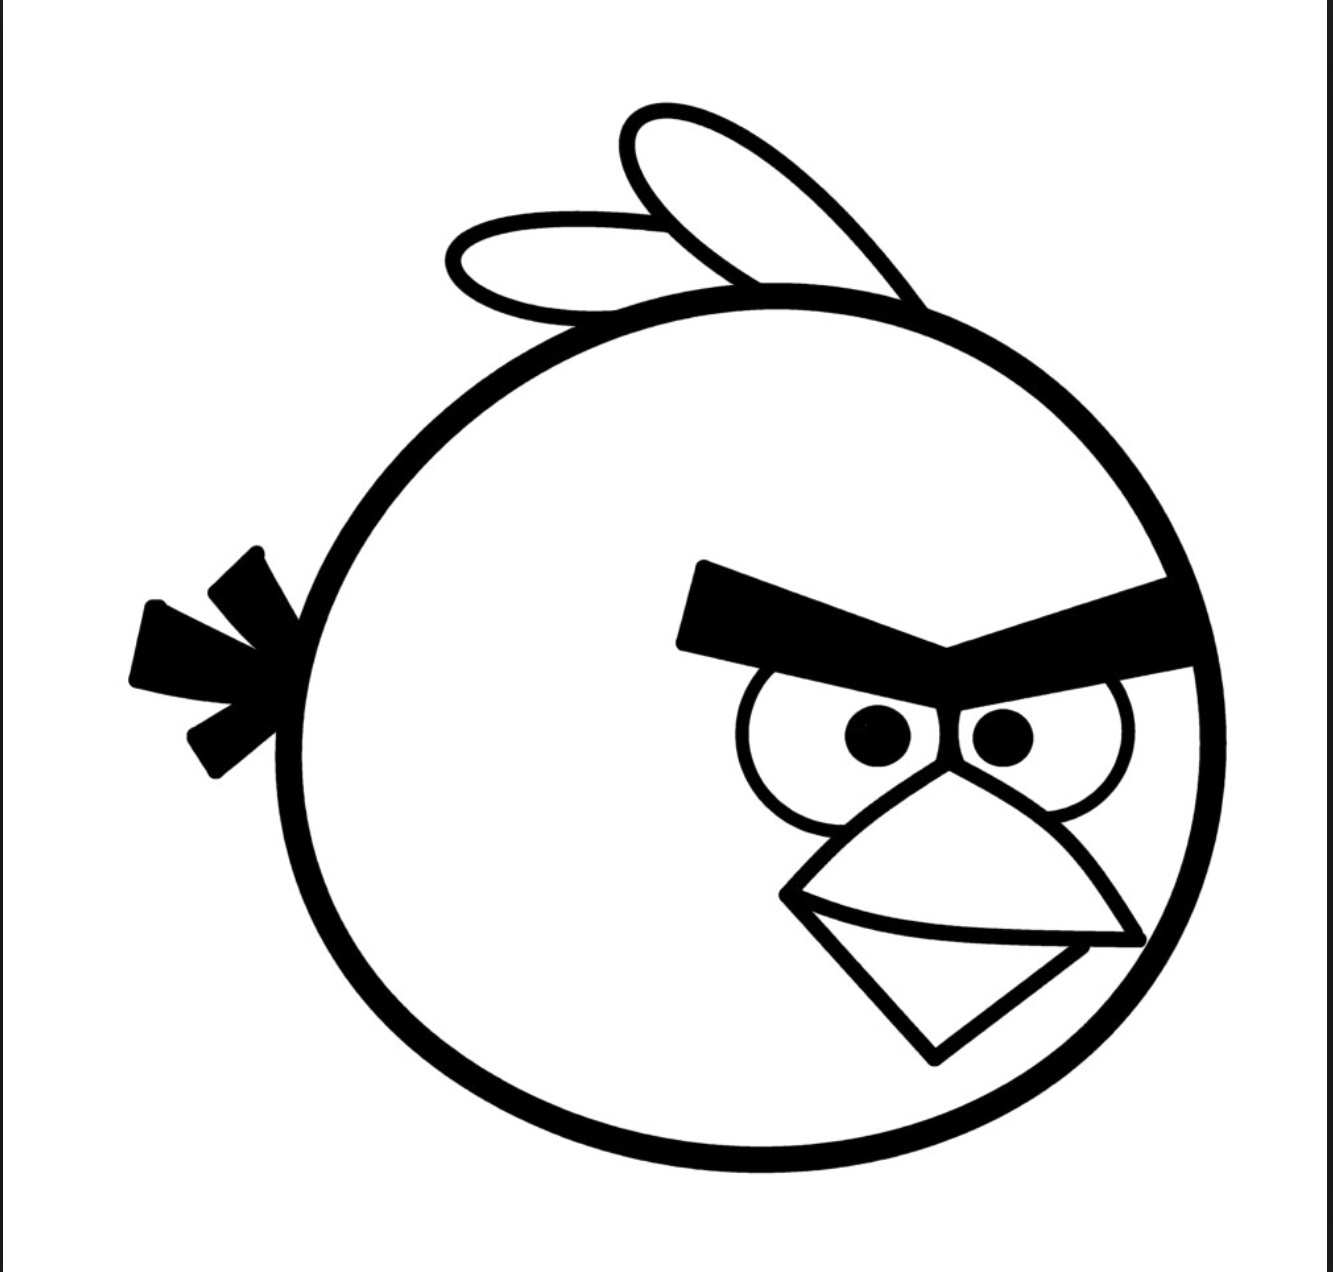 angry birds outline pictures angry birds coloring pages 13 bird coloring pages outline birds angry pictures